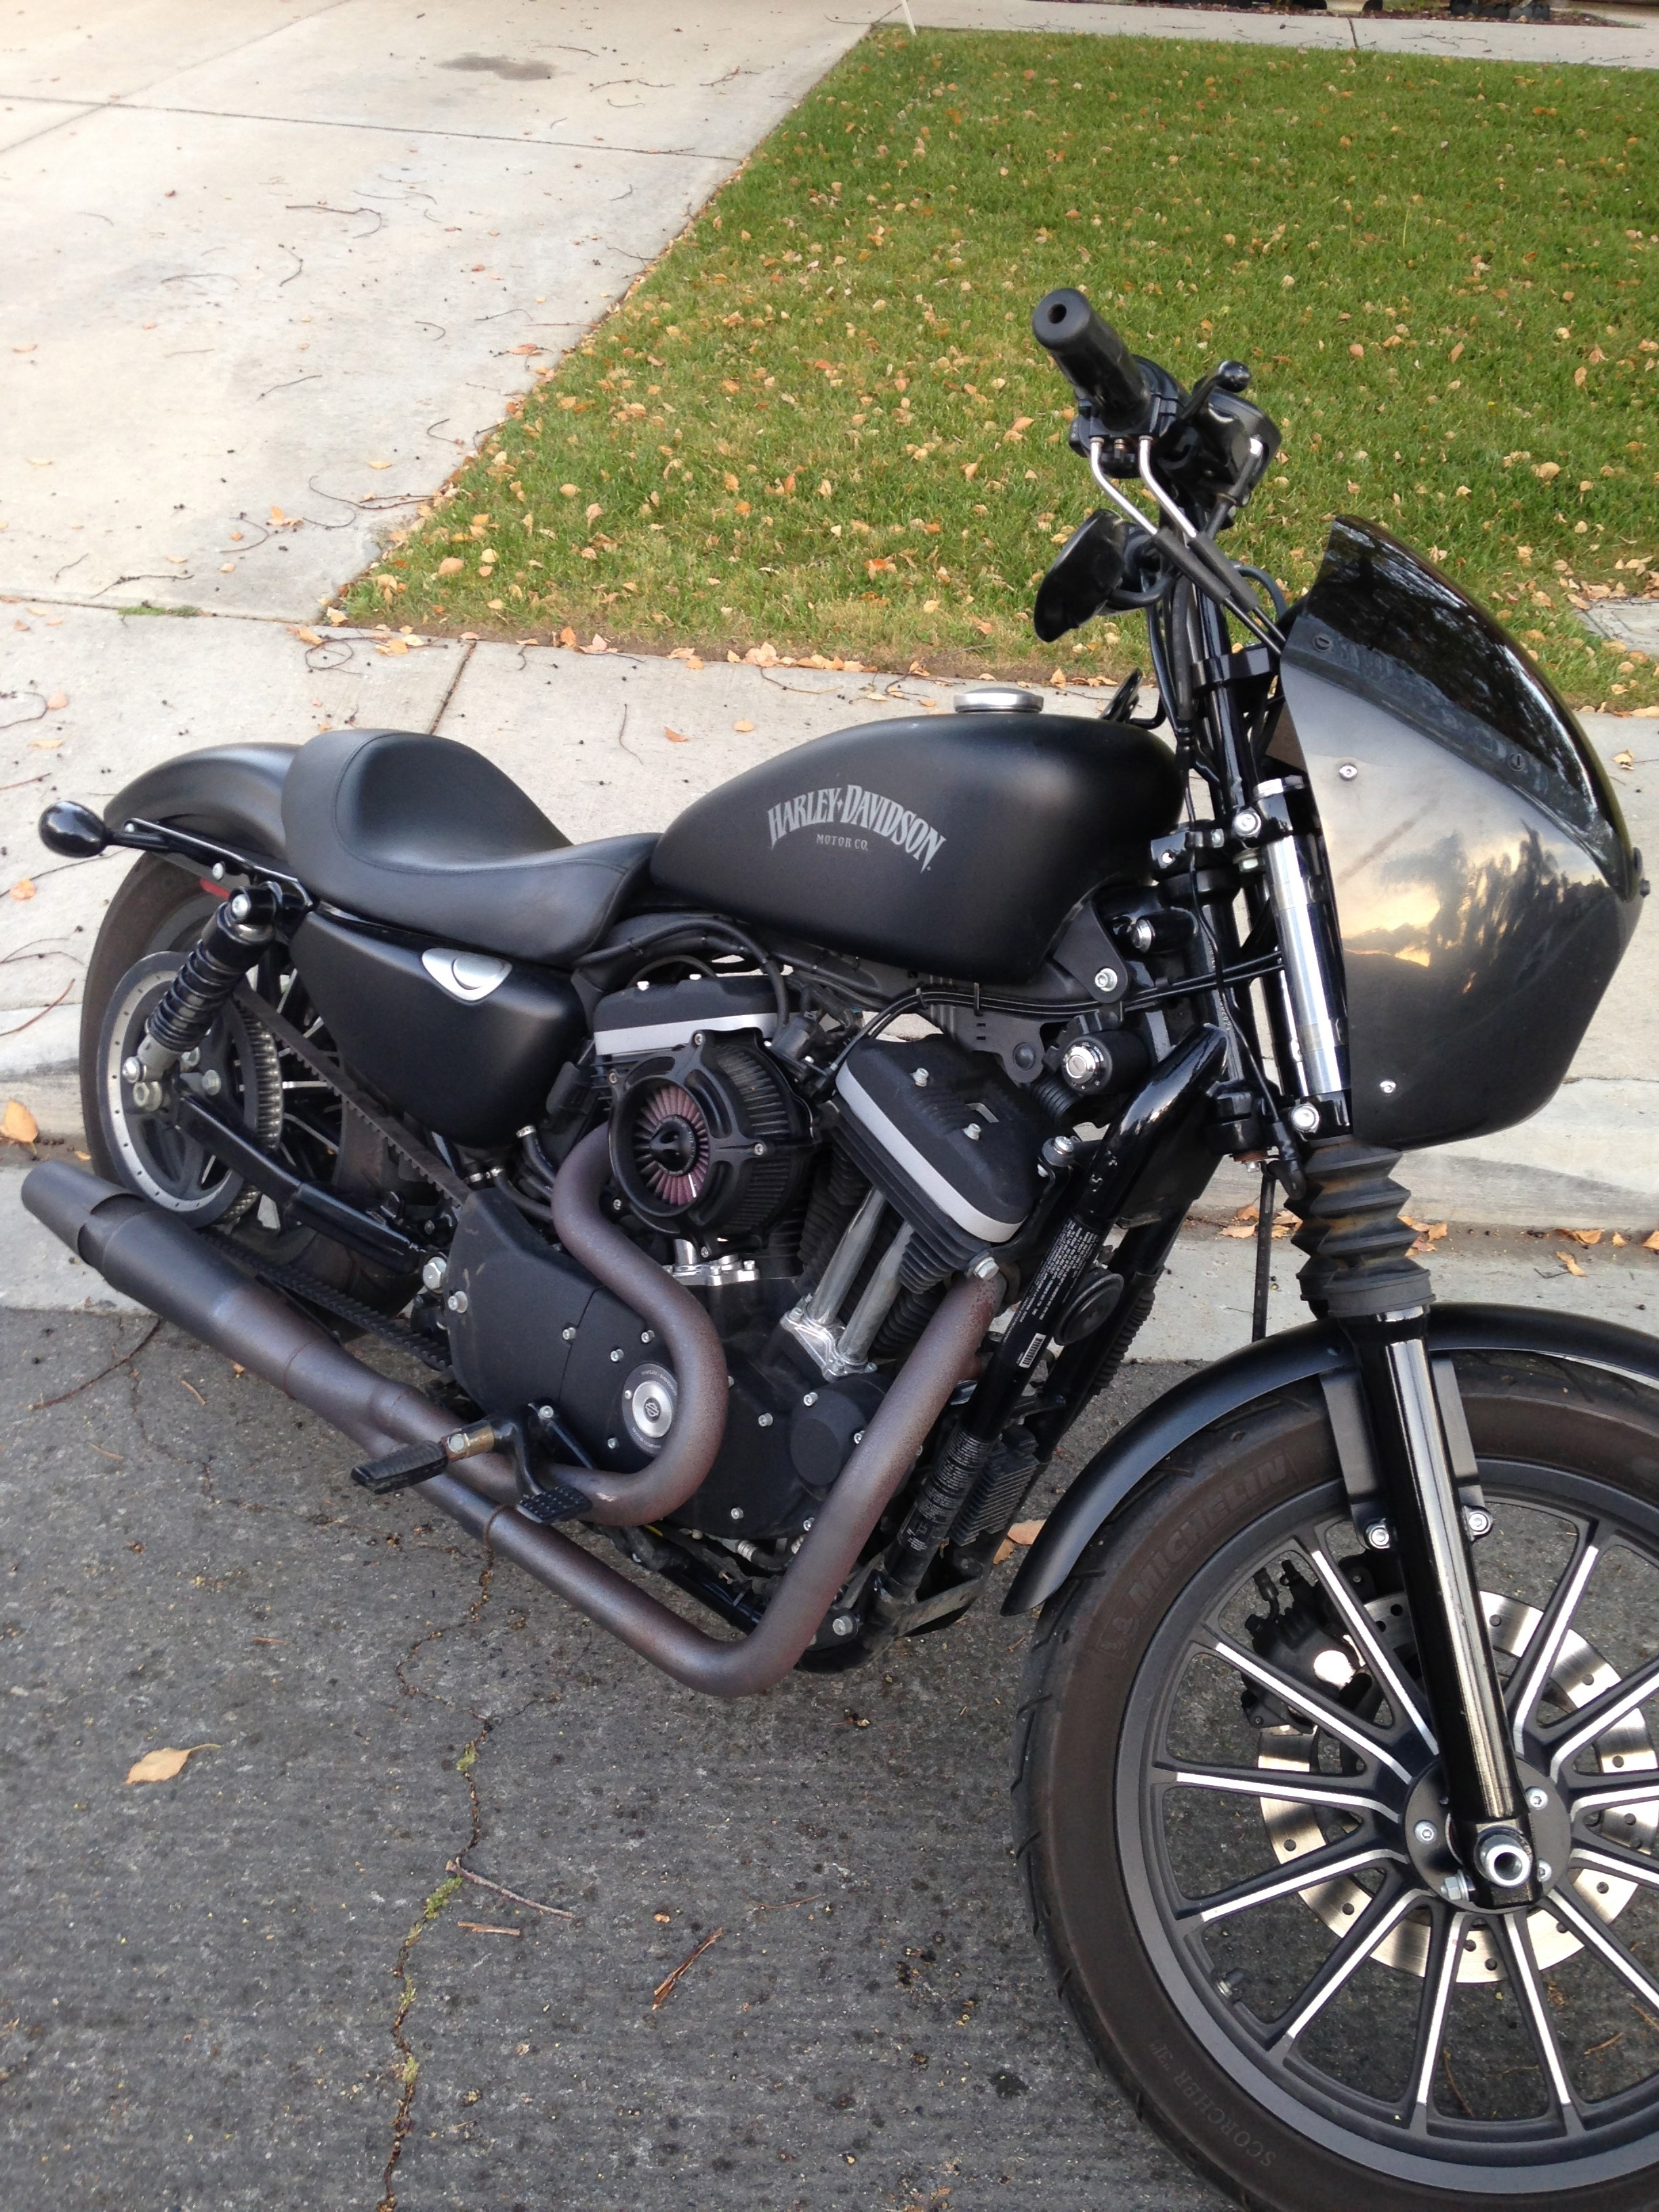 Motorcycles For Sale San Marcos Tx >> 2013 Harley-Davidson® XL883N Sportster® Iron 883™ (Black), Temecula, California (472111 ...